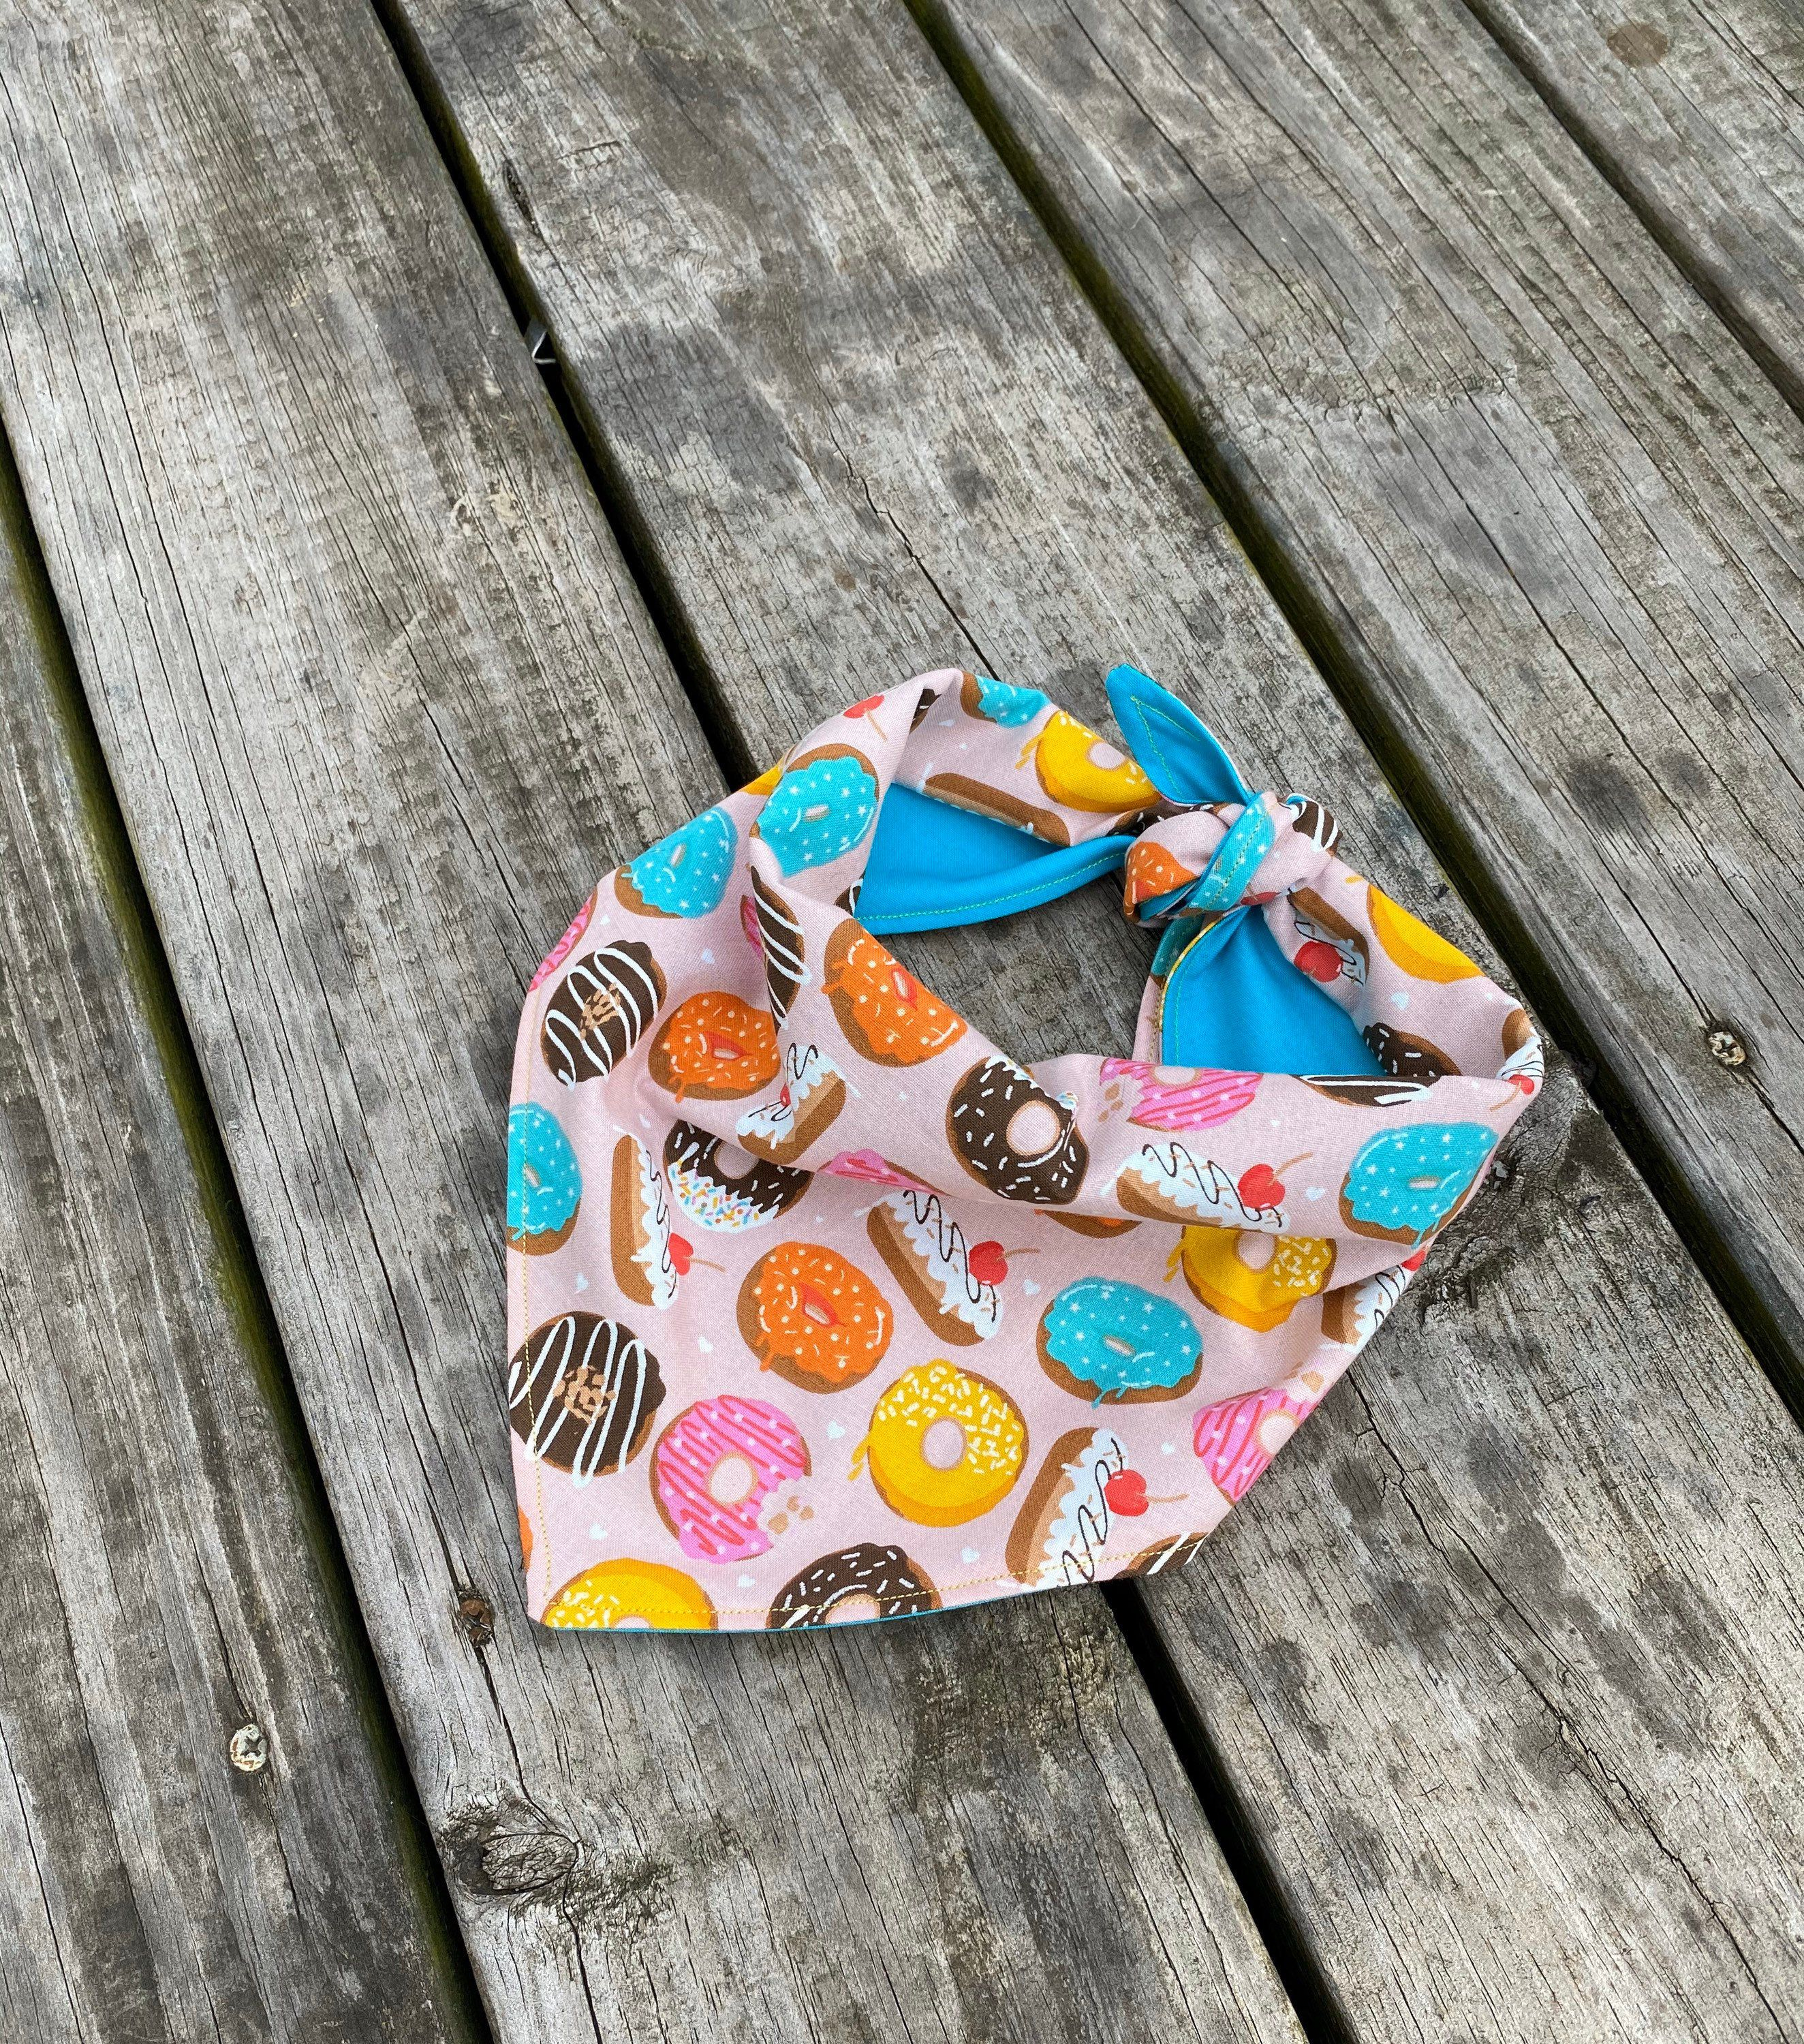 Excited to share this item from my #etsy shop: Donut Dog Bandana, Bandanas for Dogs, Sprinkles and Icing, Colorful, Donuts and Dogs, Reversible Dog Bandana #dogbandana #donutbandana #bandanasfordogs #colorfulbandana #colorful #sprinklesandicing #foodfordogs